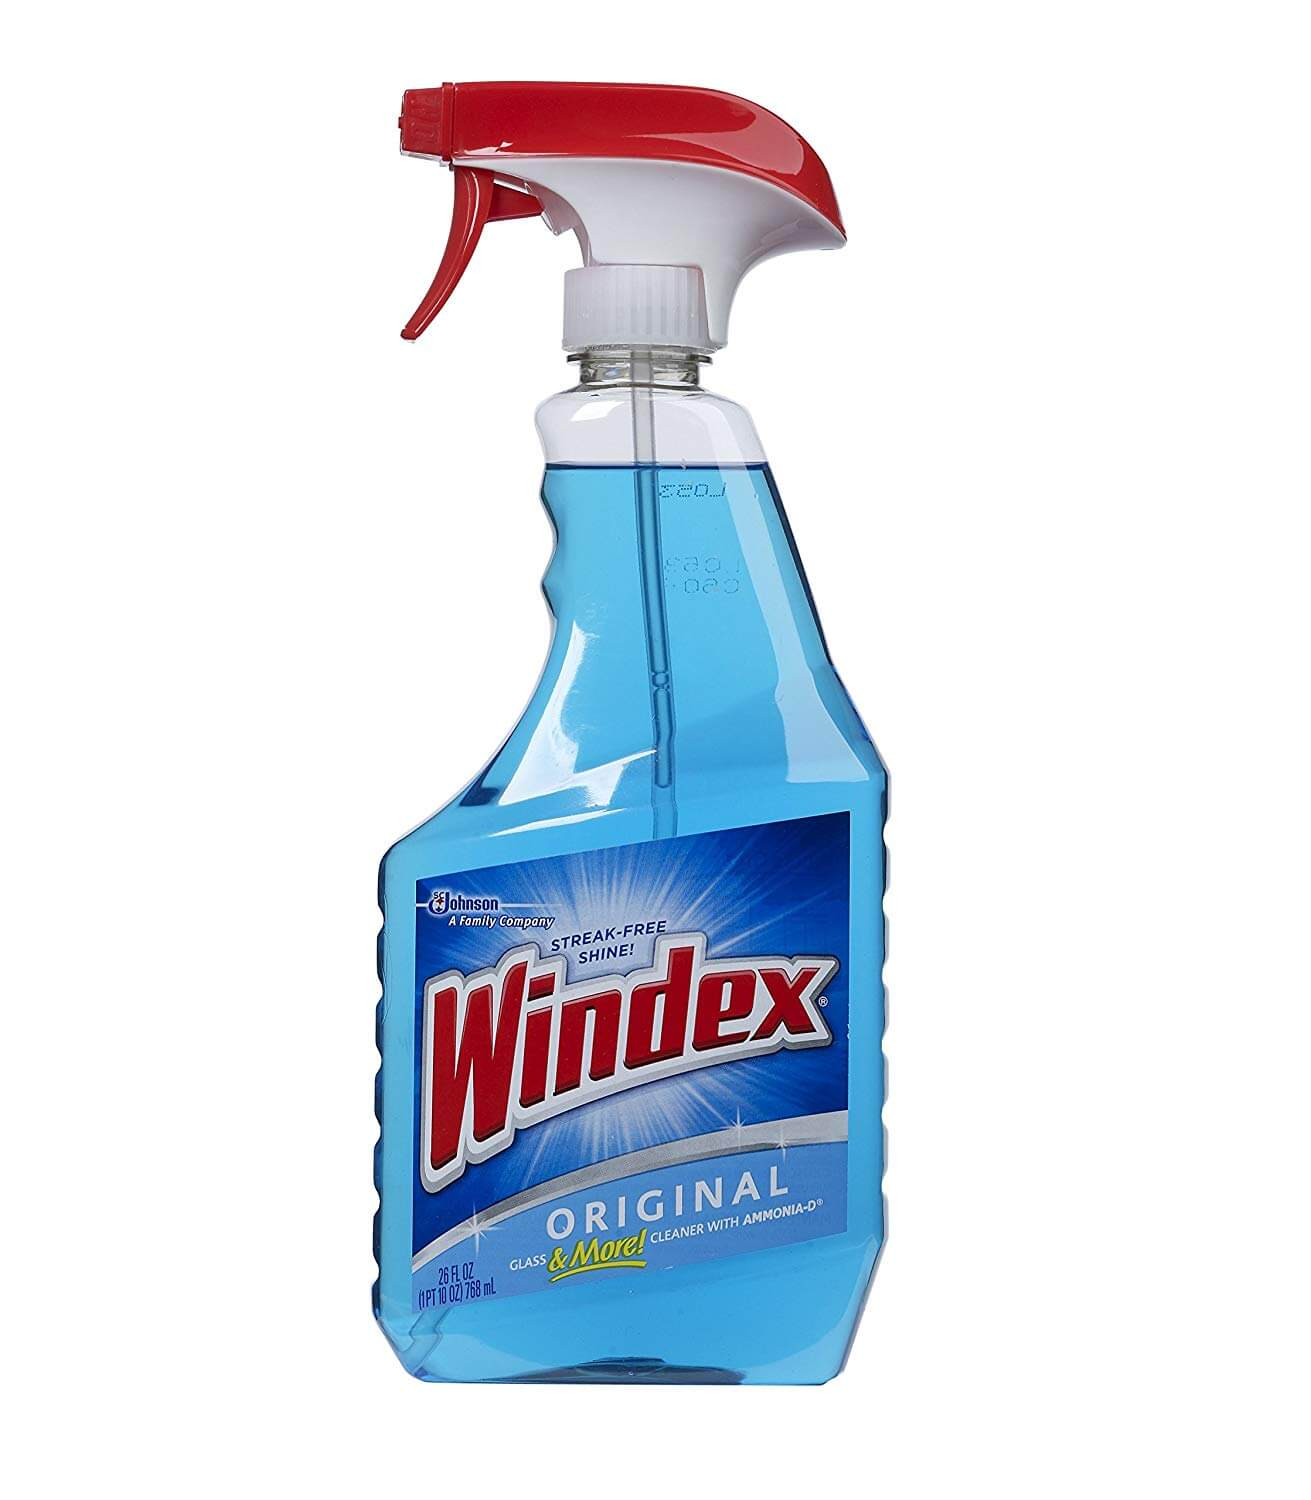 Windex: Who knew it had so many uses?